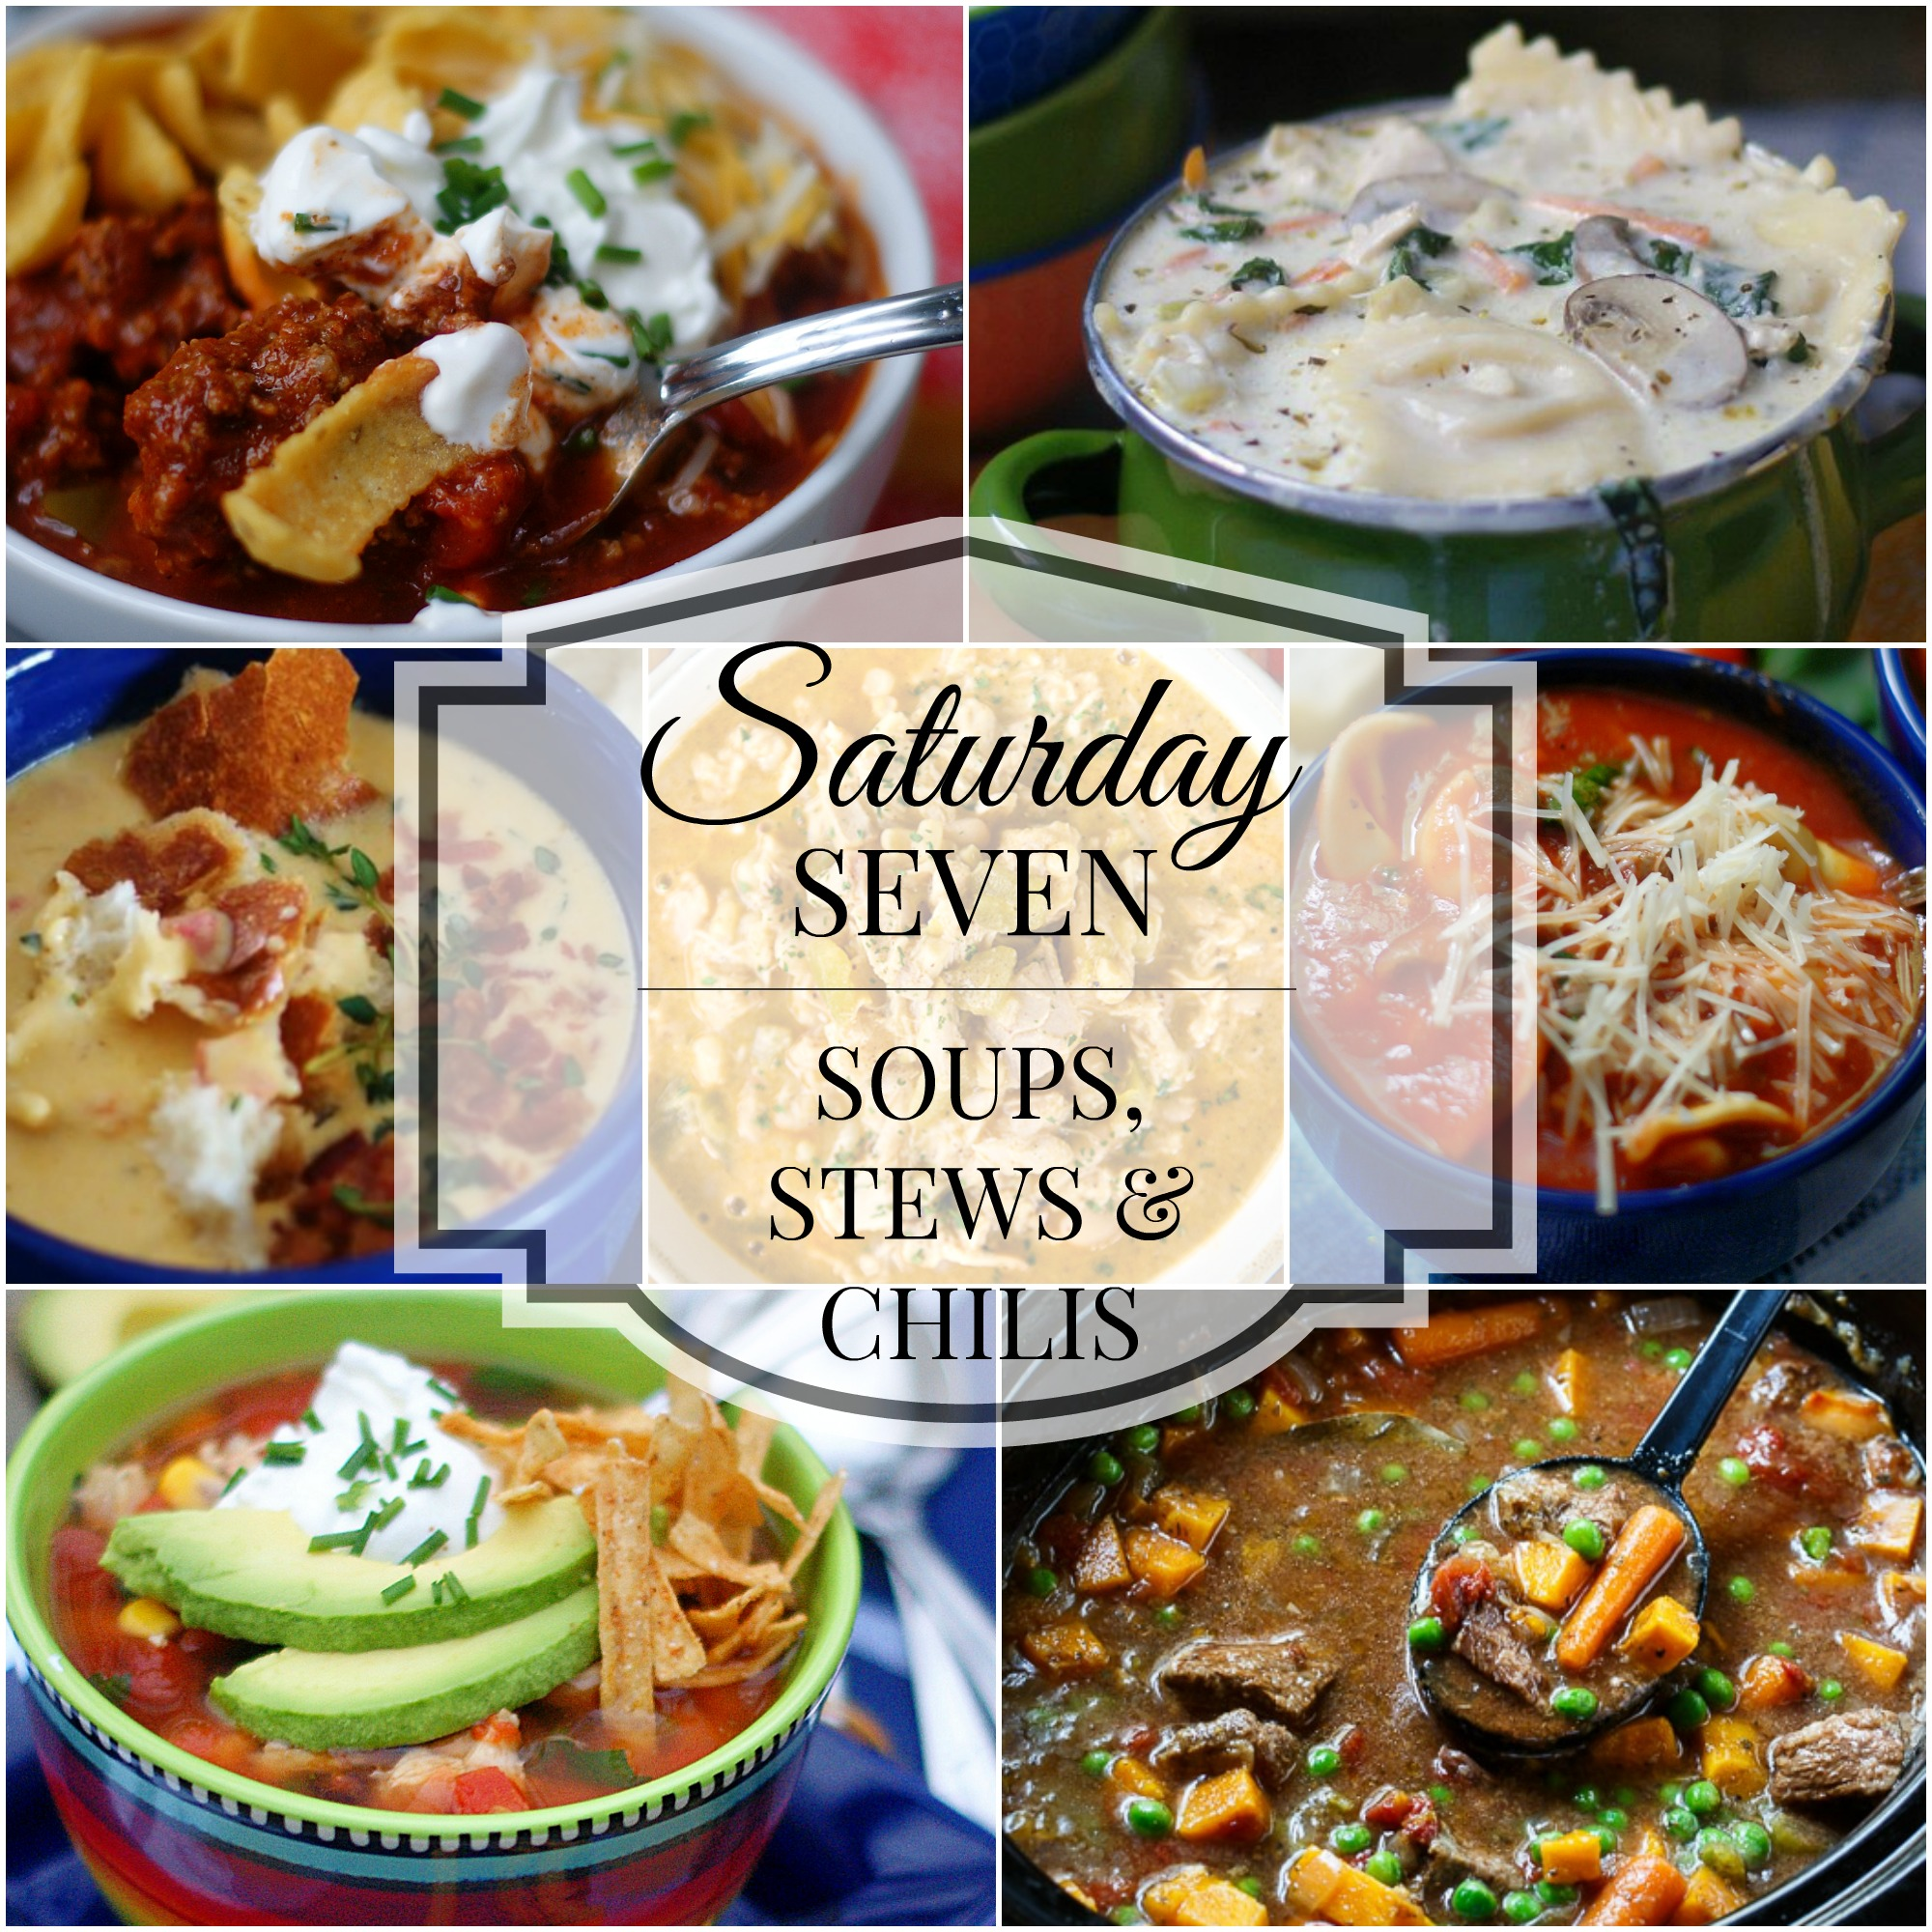 Soups, Stews & Chilis Title Collage